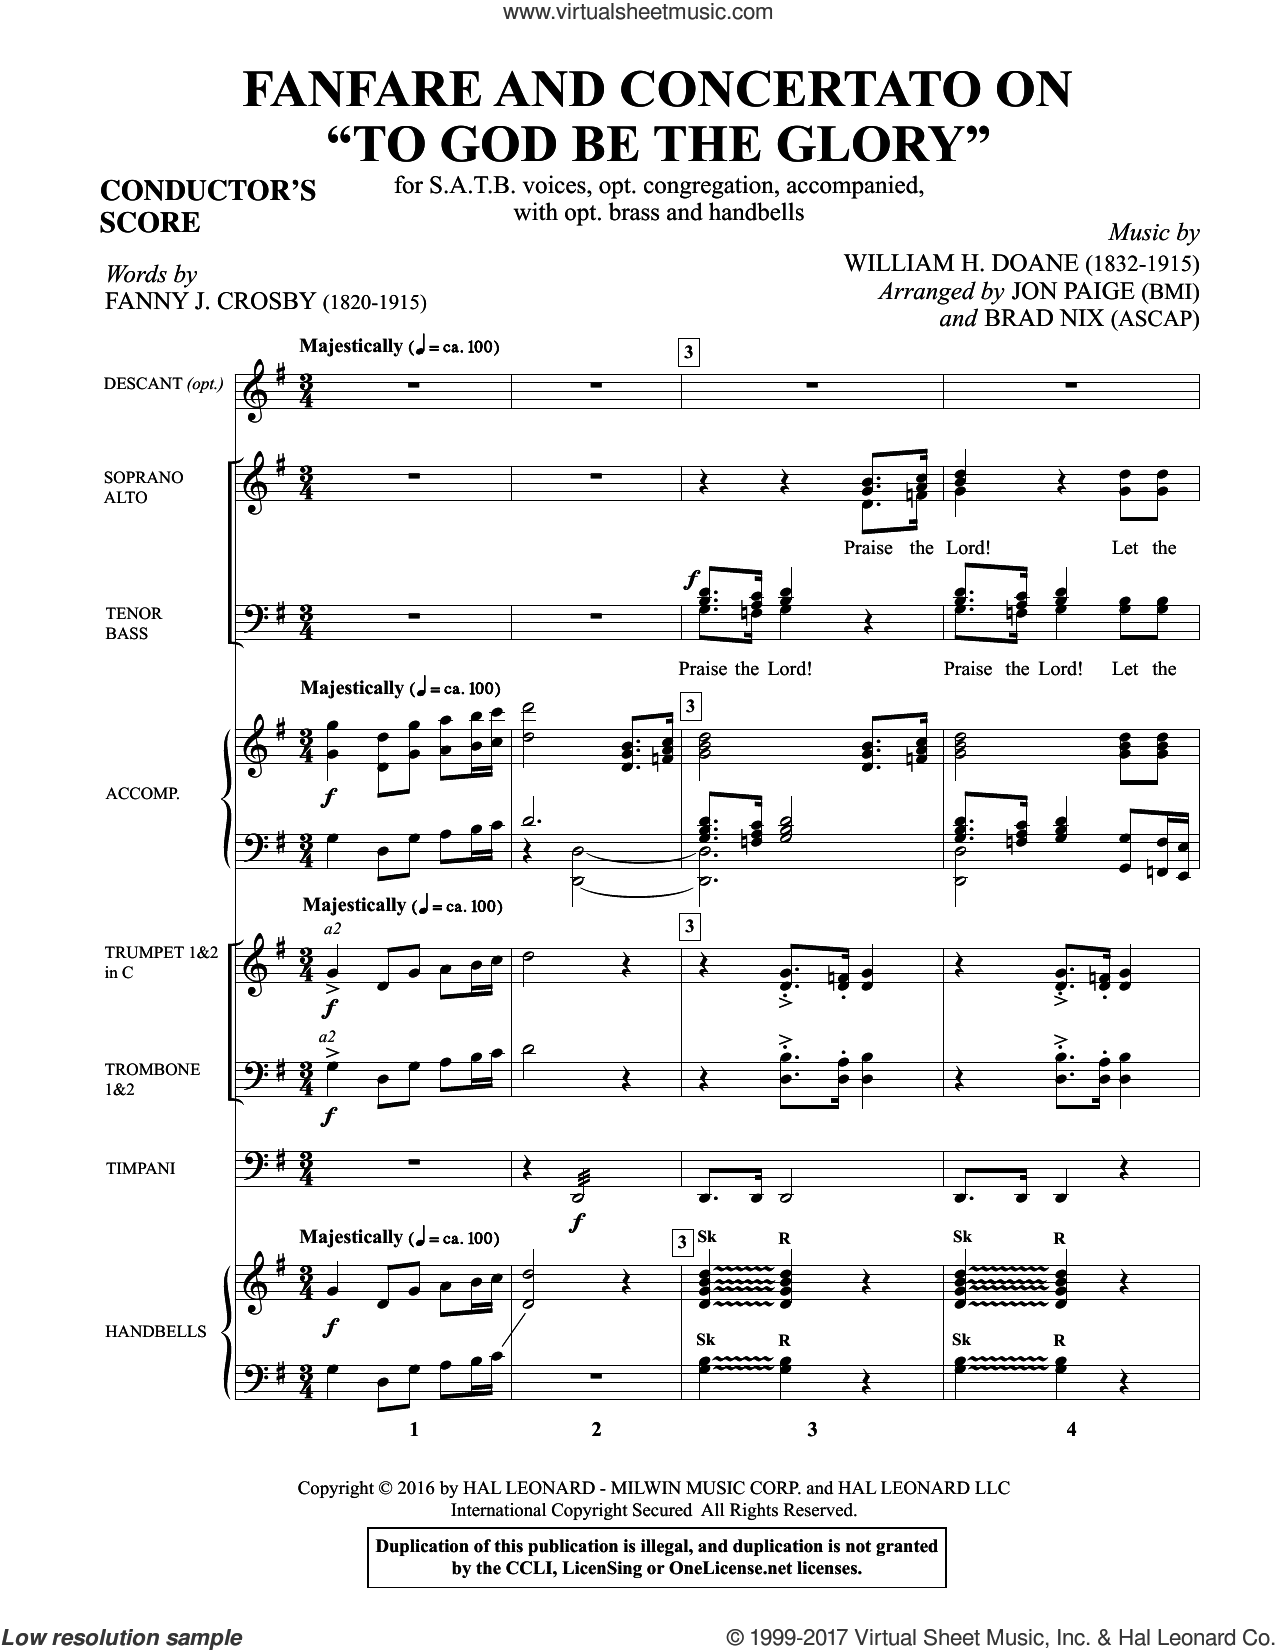 Fanfare and Concertato on 'To God Be the Glory' (COMPLETE) sheet music for orchestra/band by Brad Nix, Fanny J. Crosby, Jon Paige (arr.) and William H. Doane, intermediate skill level